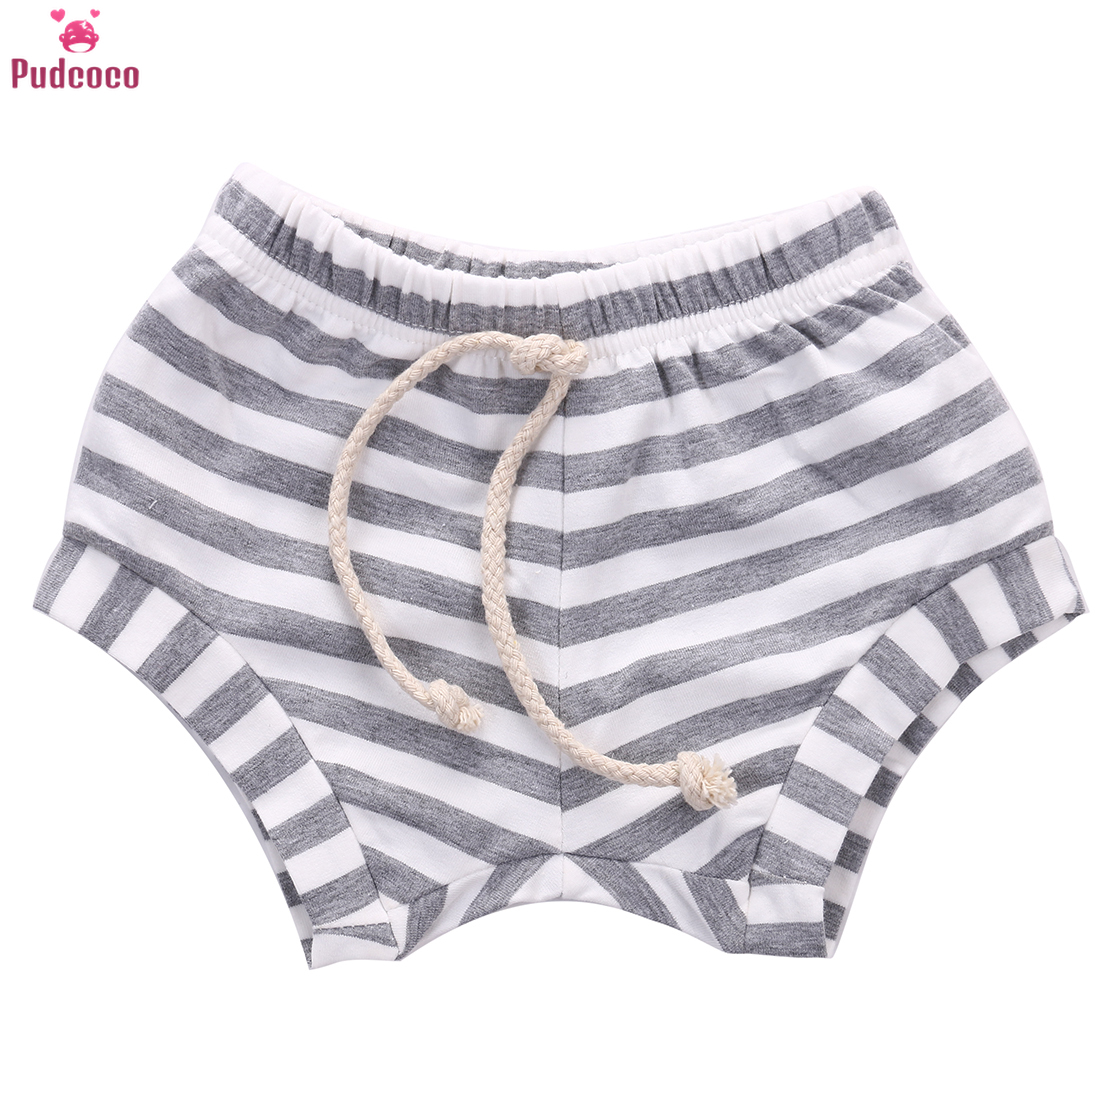 Cute Striped   Shorts   Infant Newborn Baby Boy Girl Baggy Bloomers Bottoms PP Pants Toddler Summer Baby Diaper Cover 3M-4Y